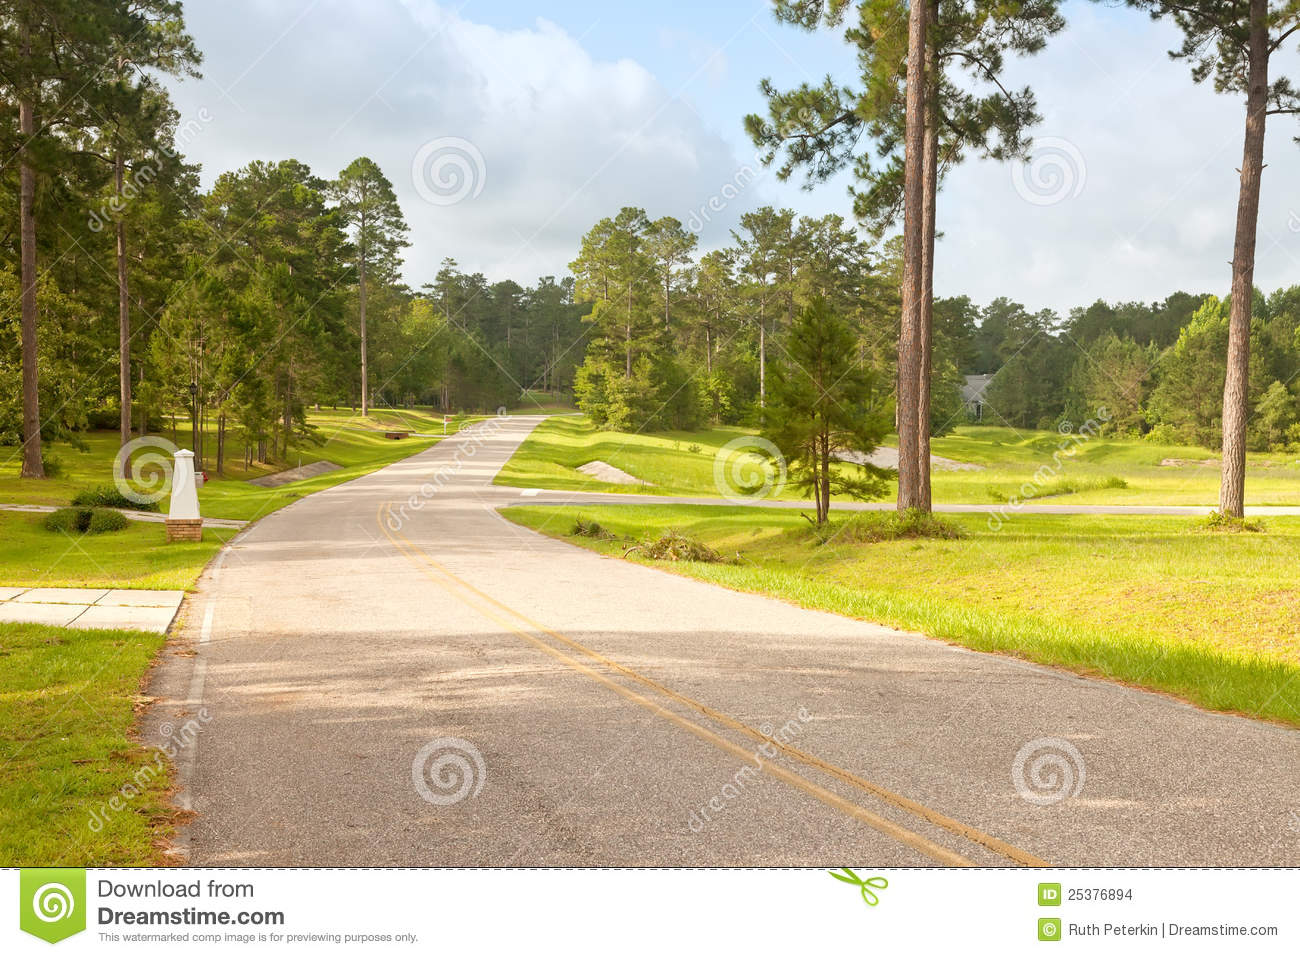 Street In Rural Florida Community Stock Images - Image ...